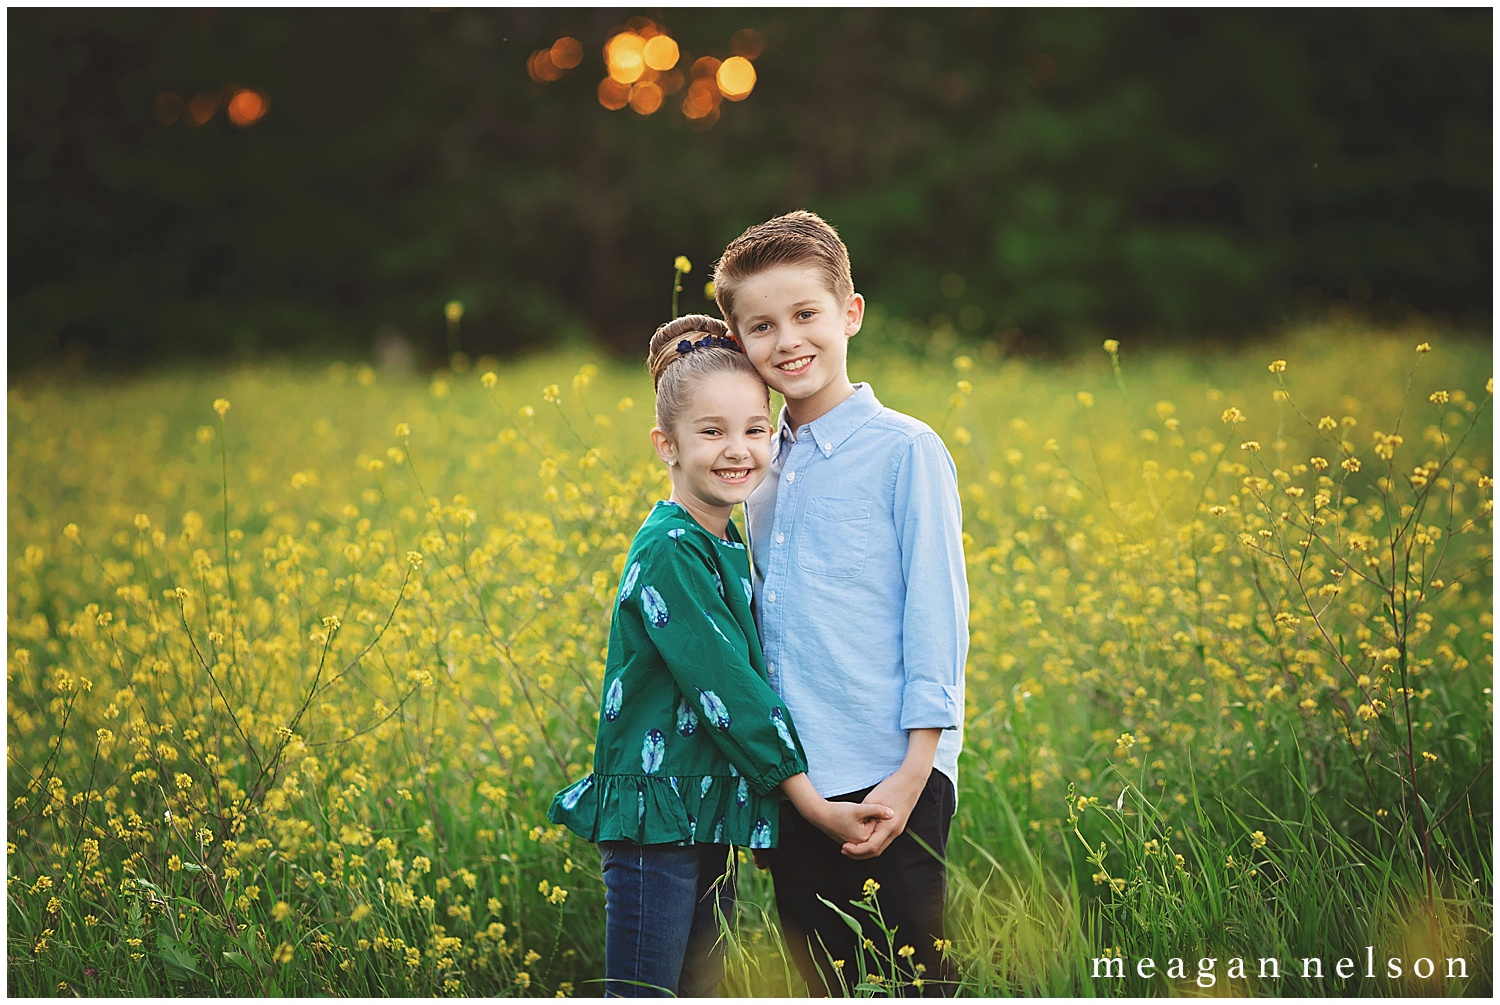 fort_worth_family_photographer_keller_pointe021.jpg